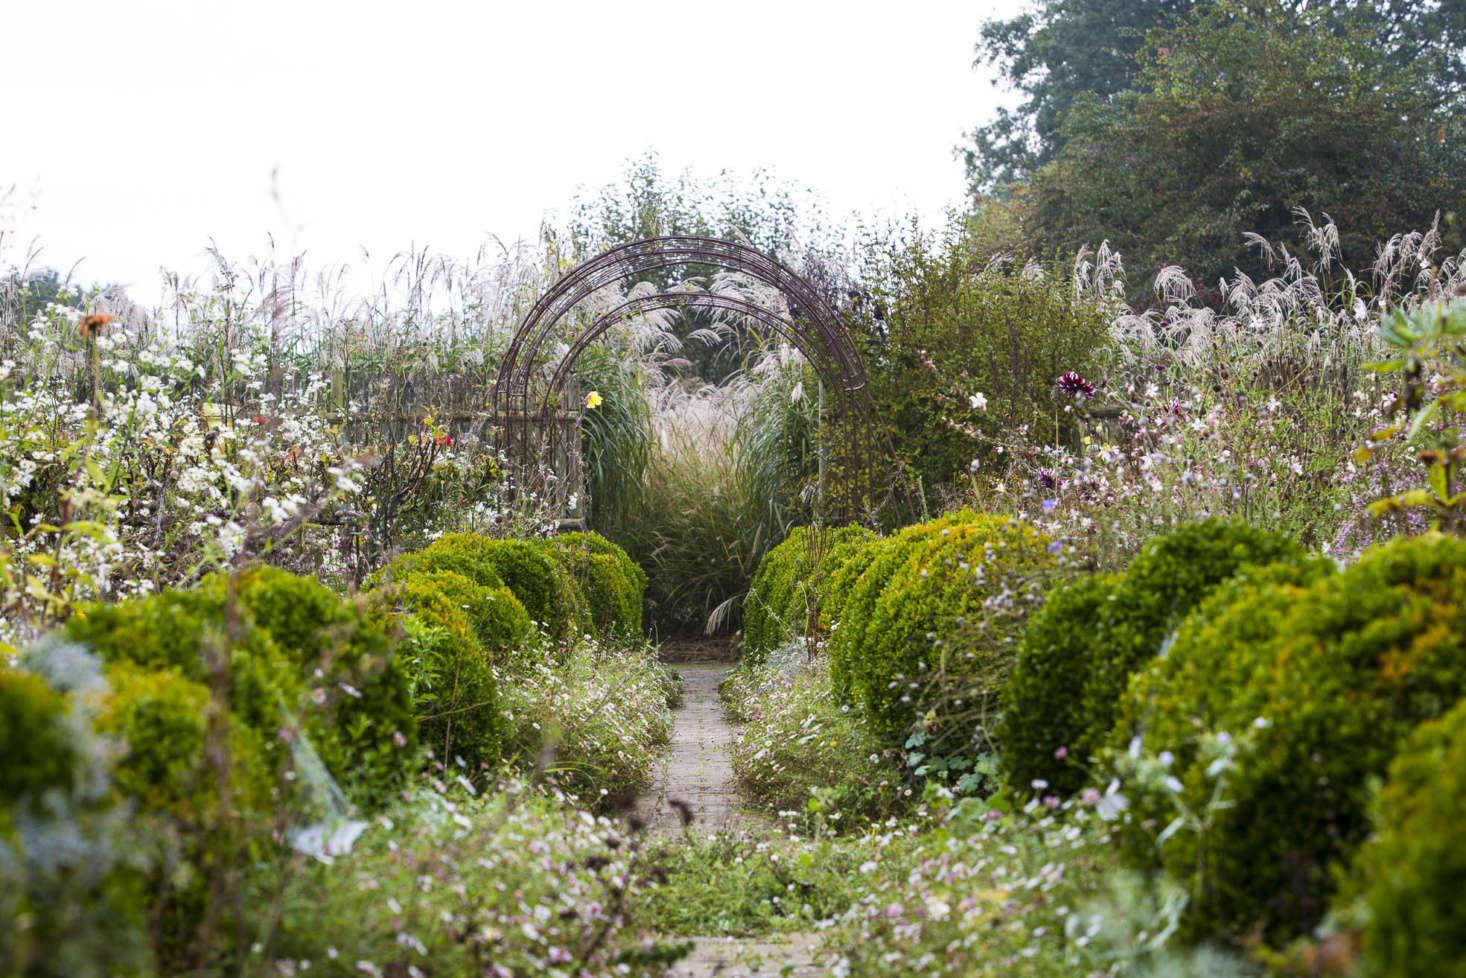 Empty arches and shaggy topiary give this garden an informal structure even when the jewel-like dahlias and helianthemums have faded and the trailing Erigeron annushas withdrawn. Successional perennial and bulb planting, flowering from spring to autumn, is held together by a river of bright, tall annuals, such as nigella, poppy, dill, and red orach spinach.